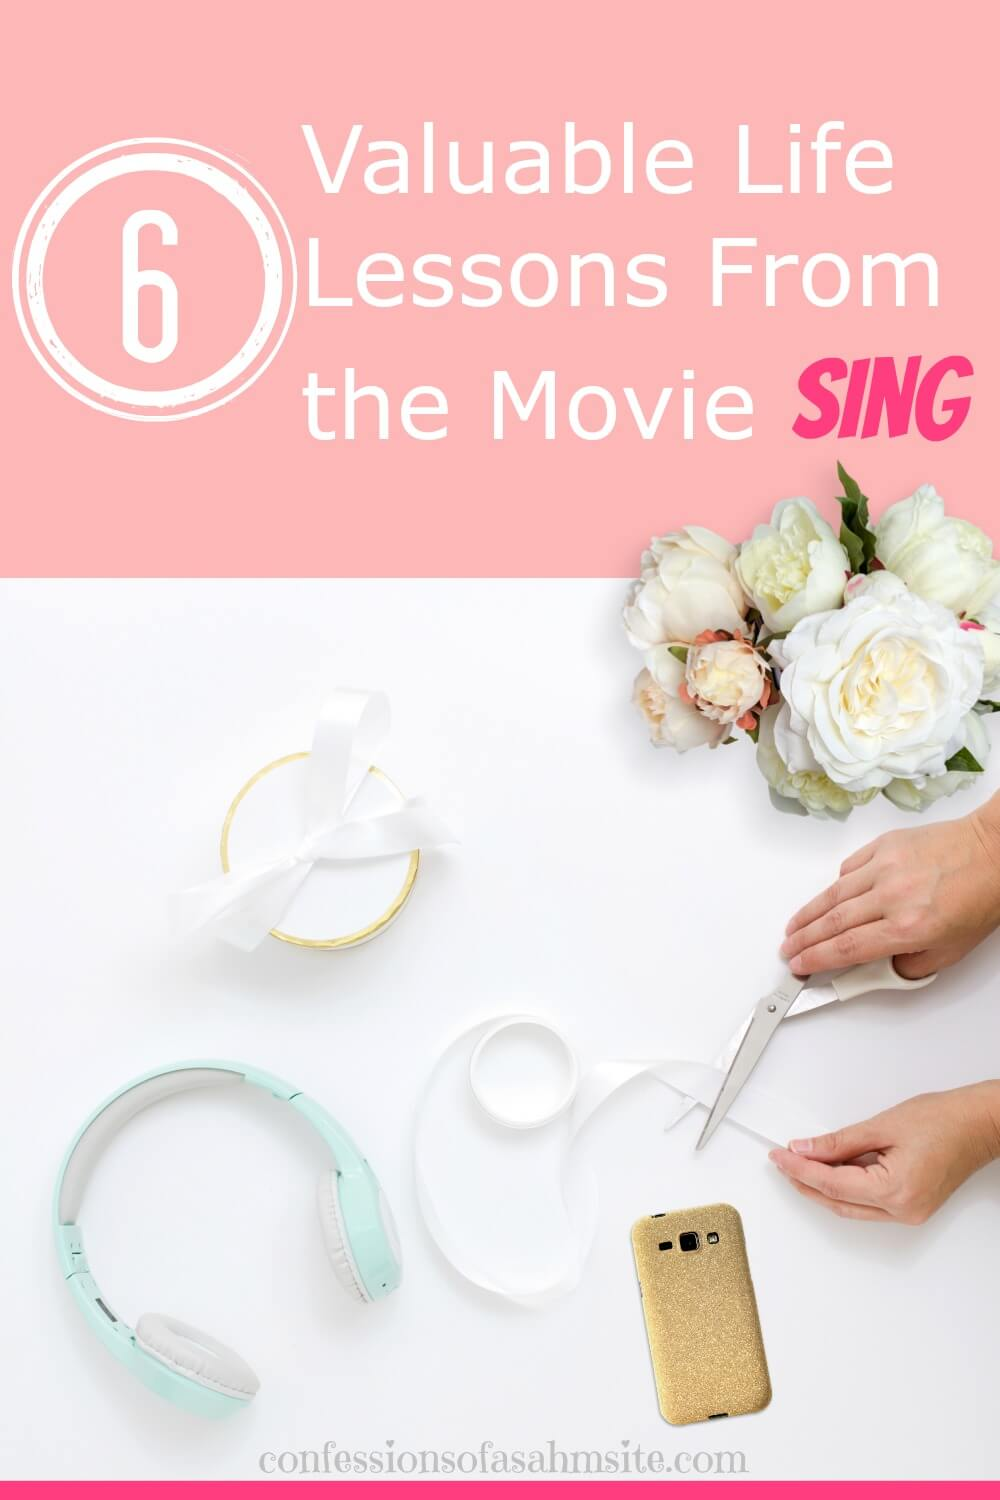 6 Valuable Life Lessons From the Movie Sing. Although it's a kid's movie, as adults we can learn quite a bit from this movie. Read what lessons I learned from watching it.